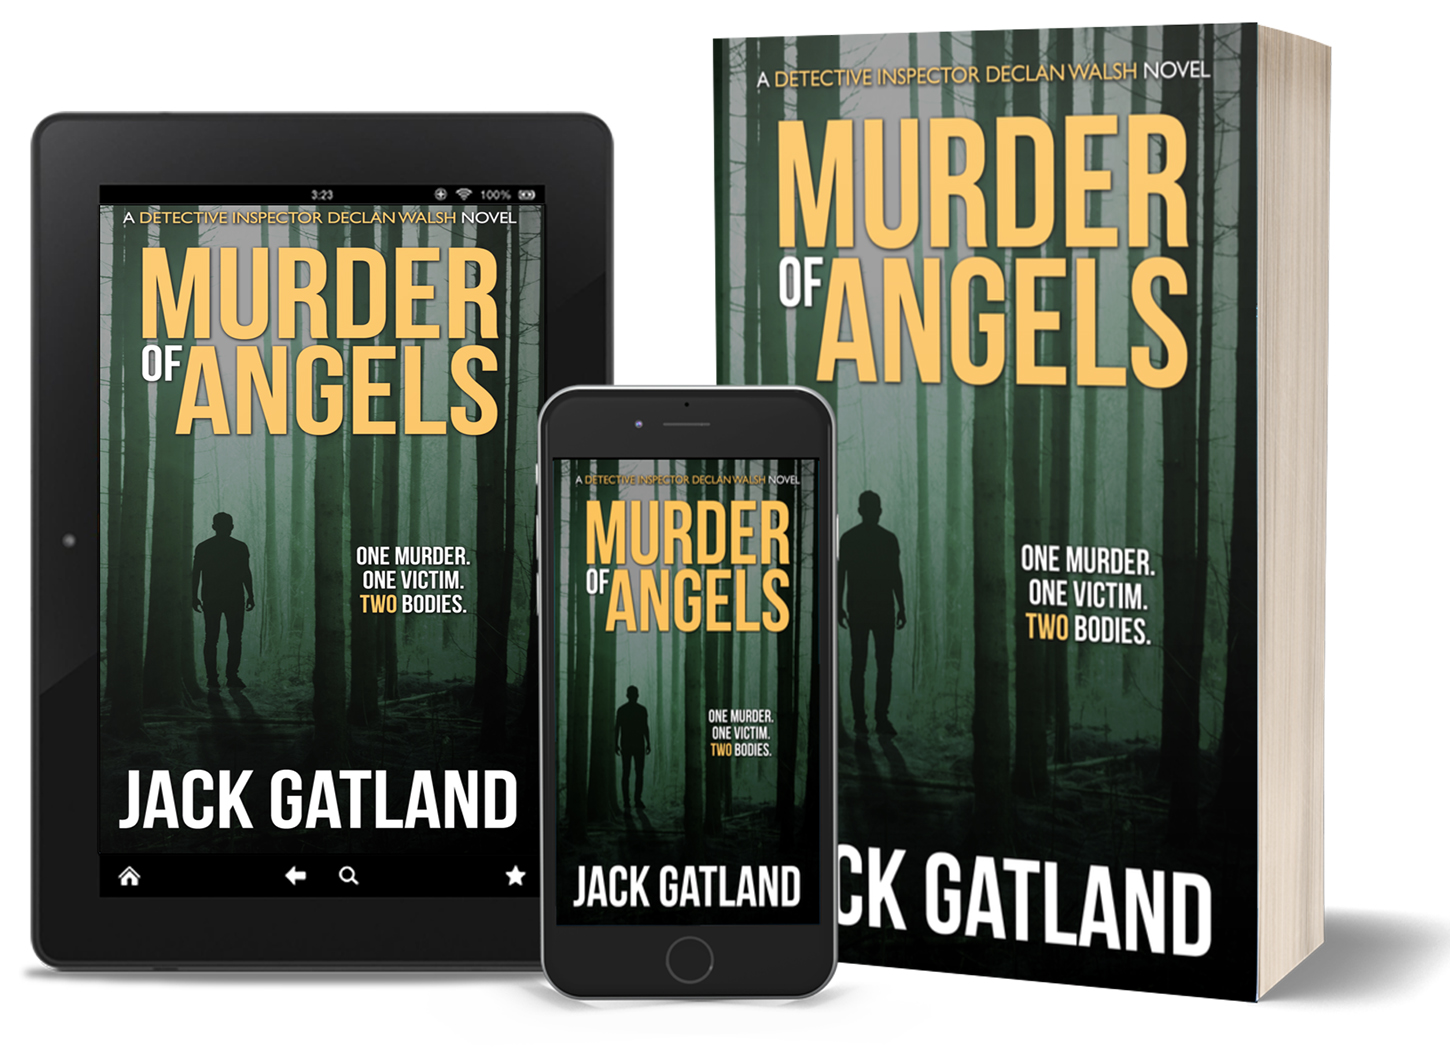 MURDER OF ANGELS: available now